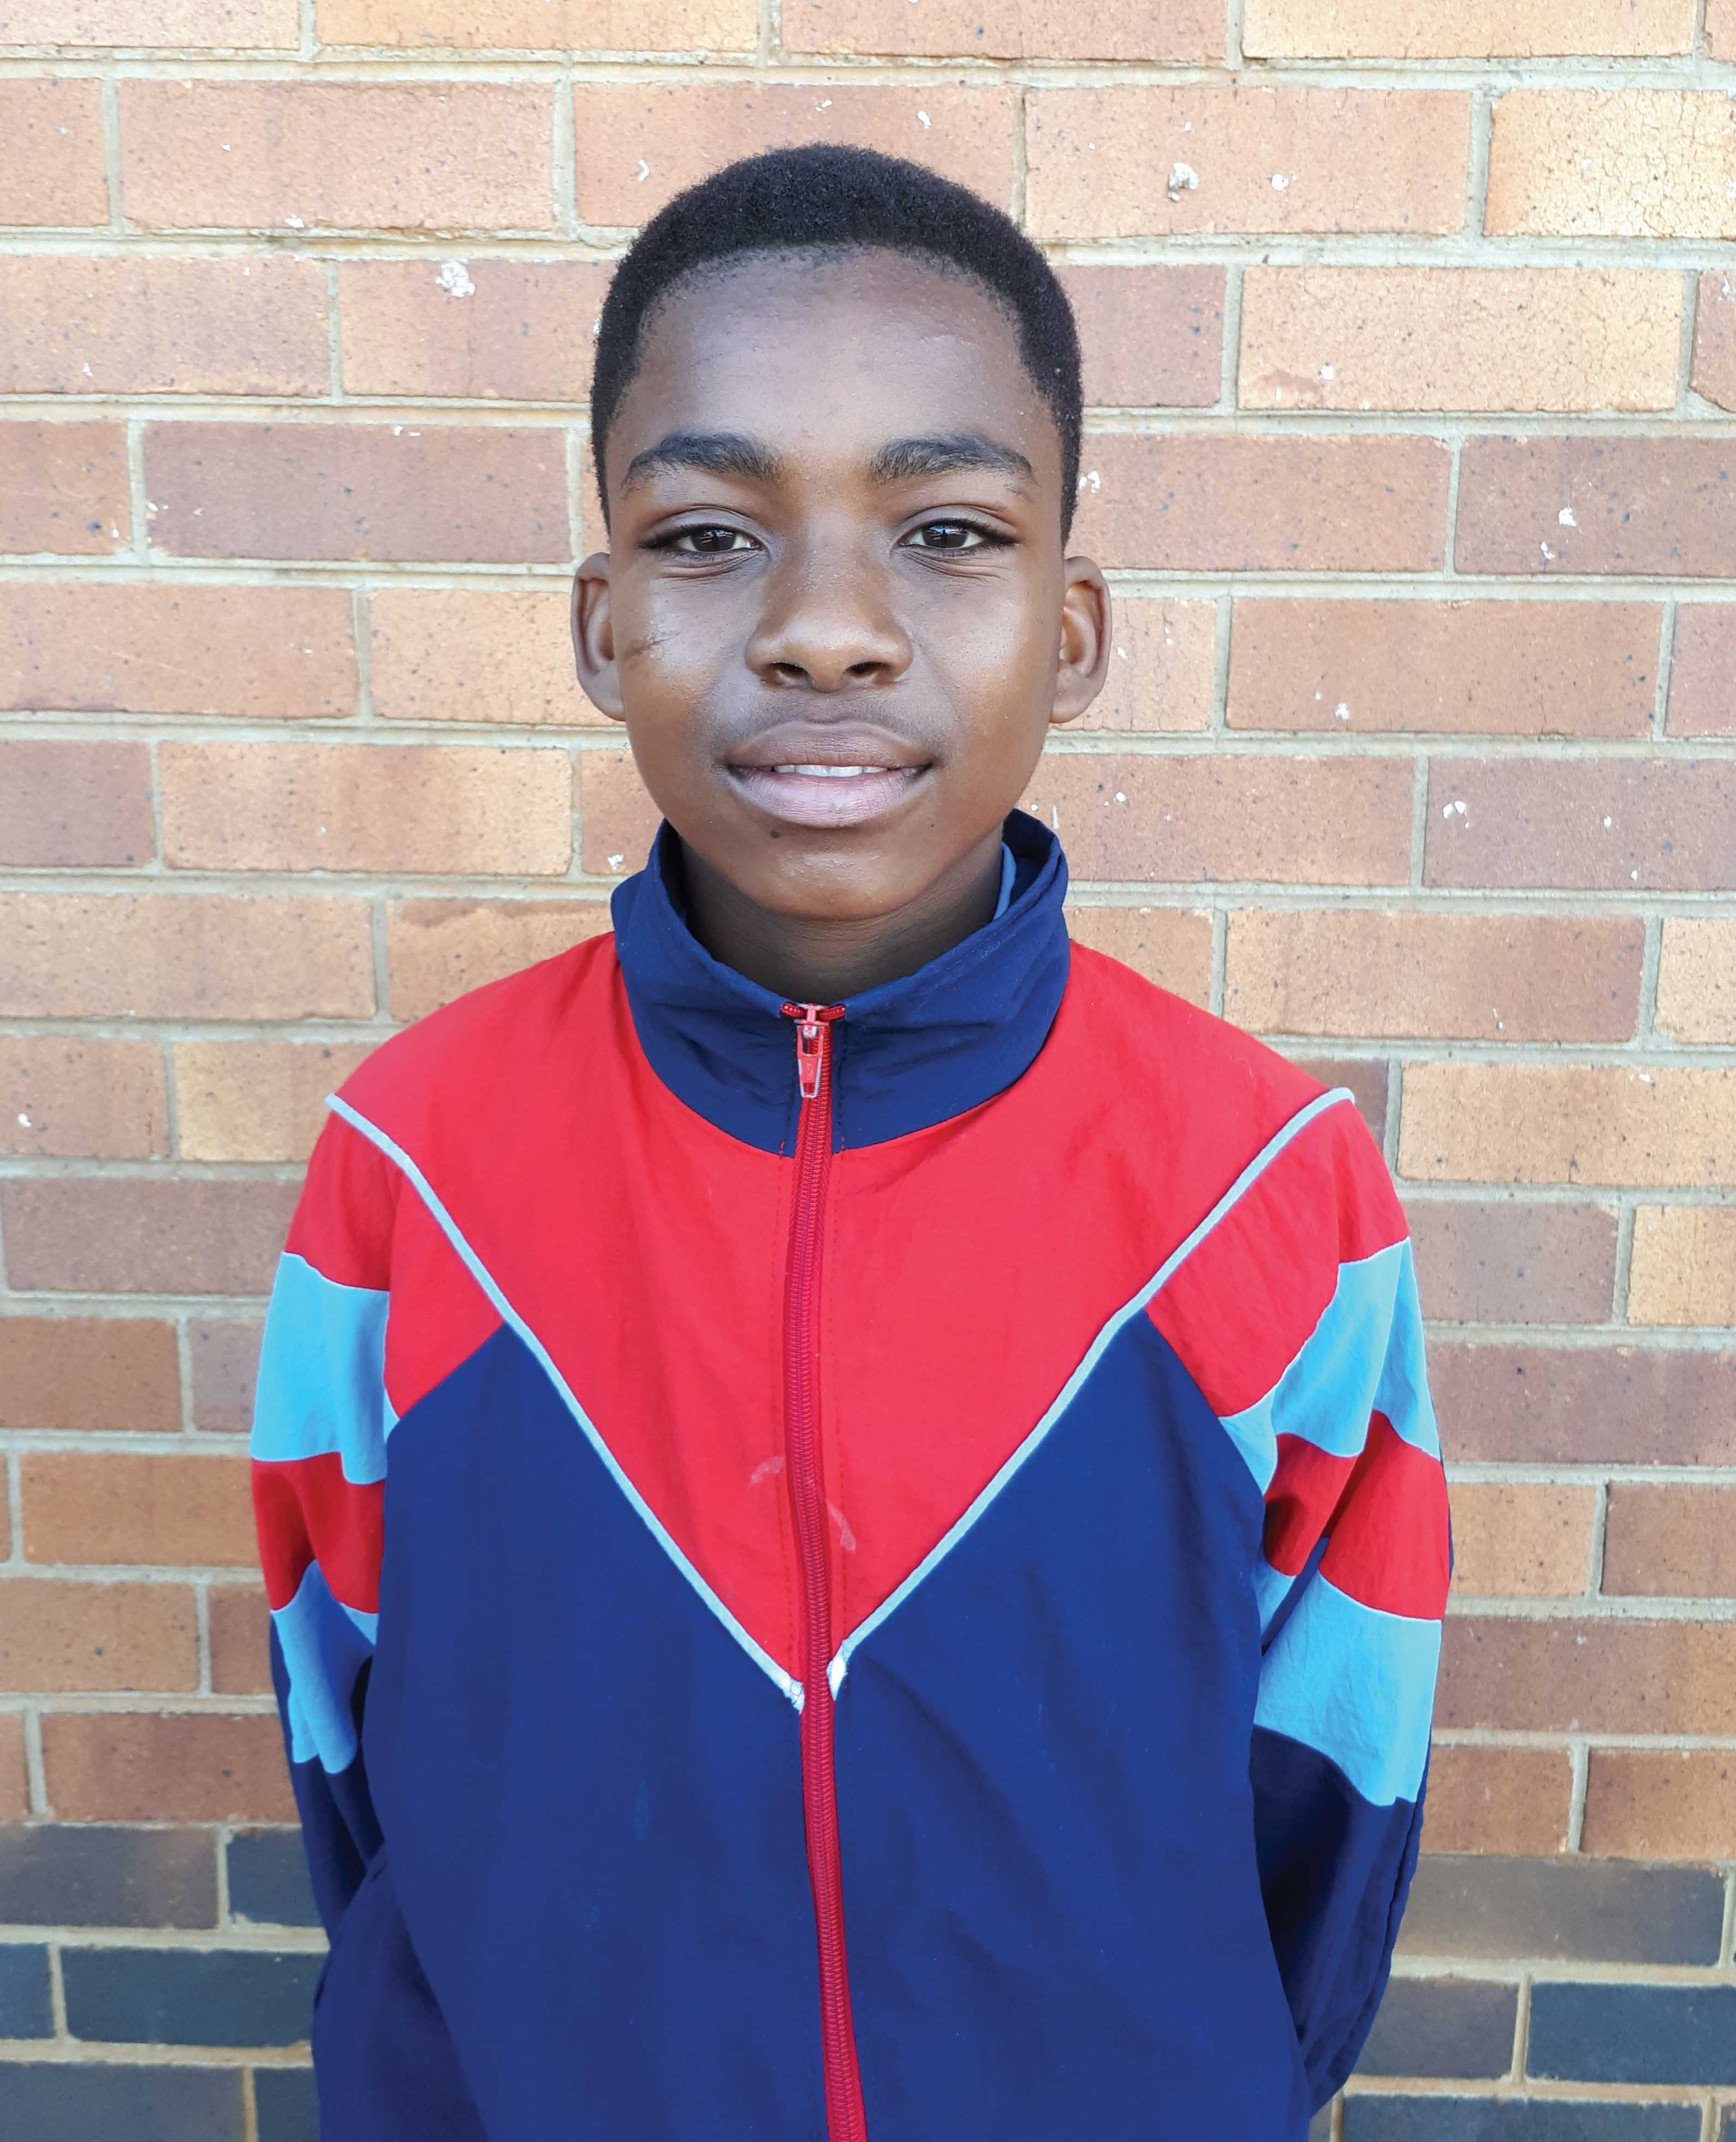 Thato Koloane, a Grade 7 pupil of KPS has been chosen to represent Bokamosho Investment at the Gothia Cup in China during August. He will be participating in the u/14 team.